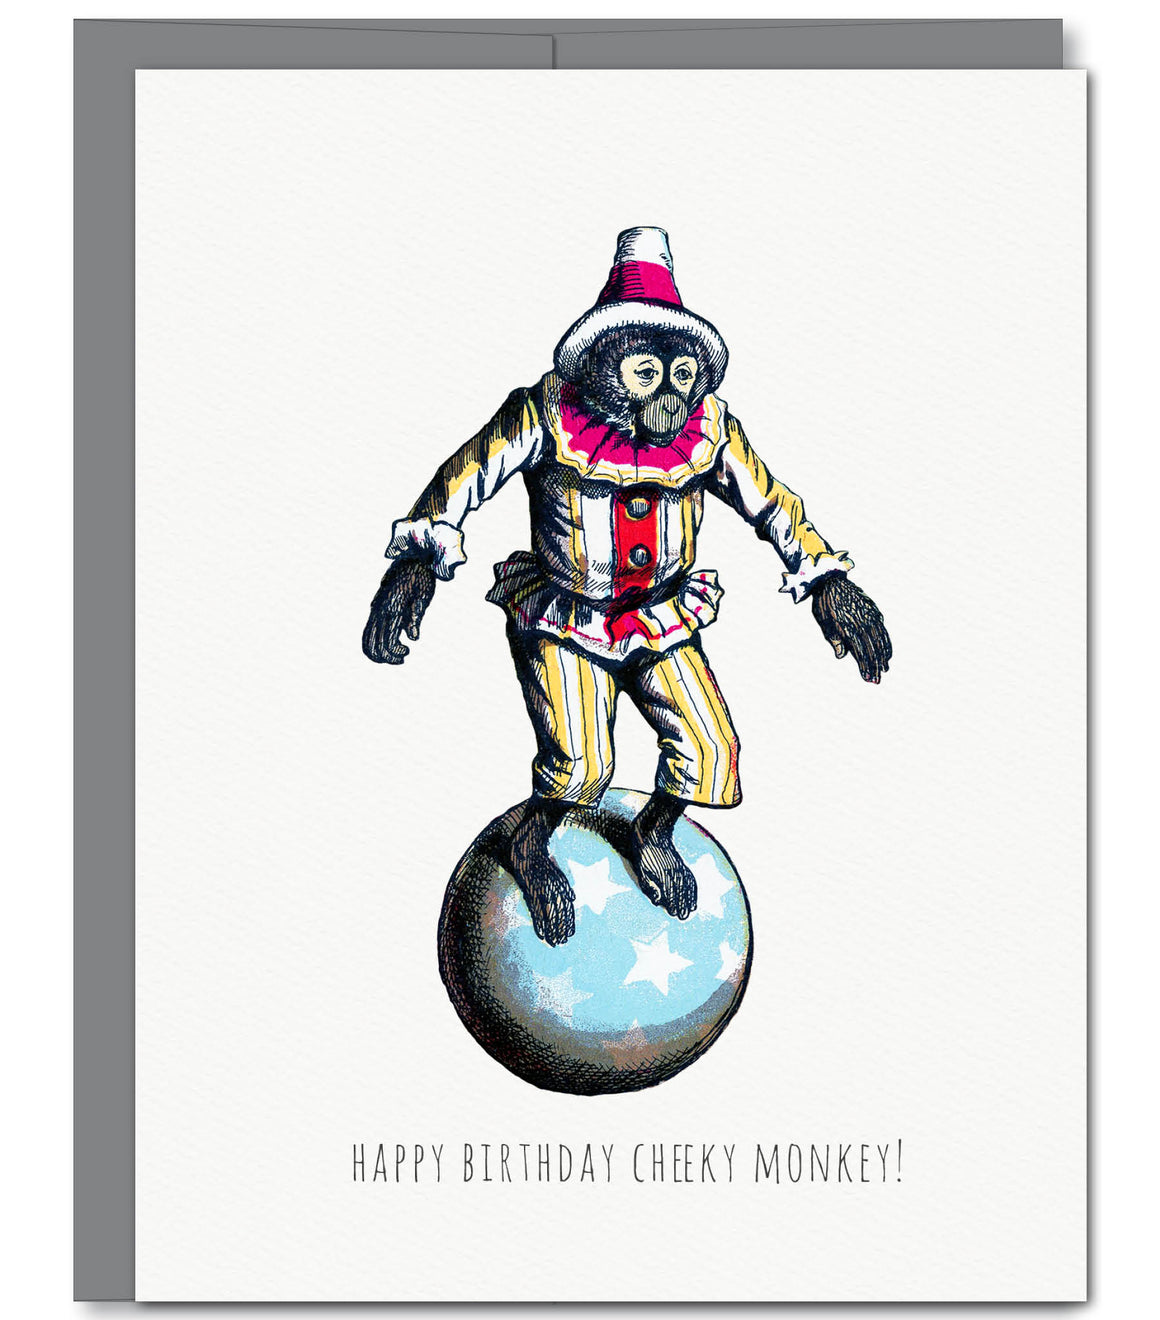 Cheeky Monkey Birthday Glitter Greeting Card | Sylvan Gate Design